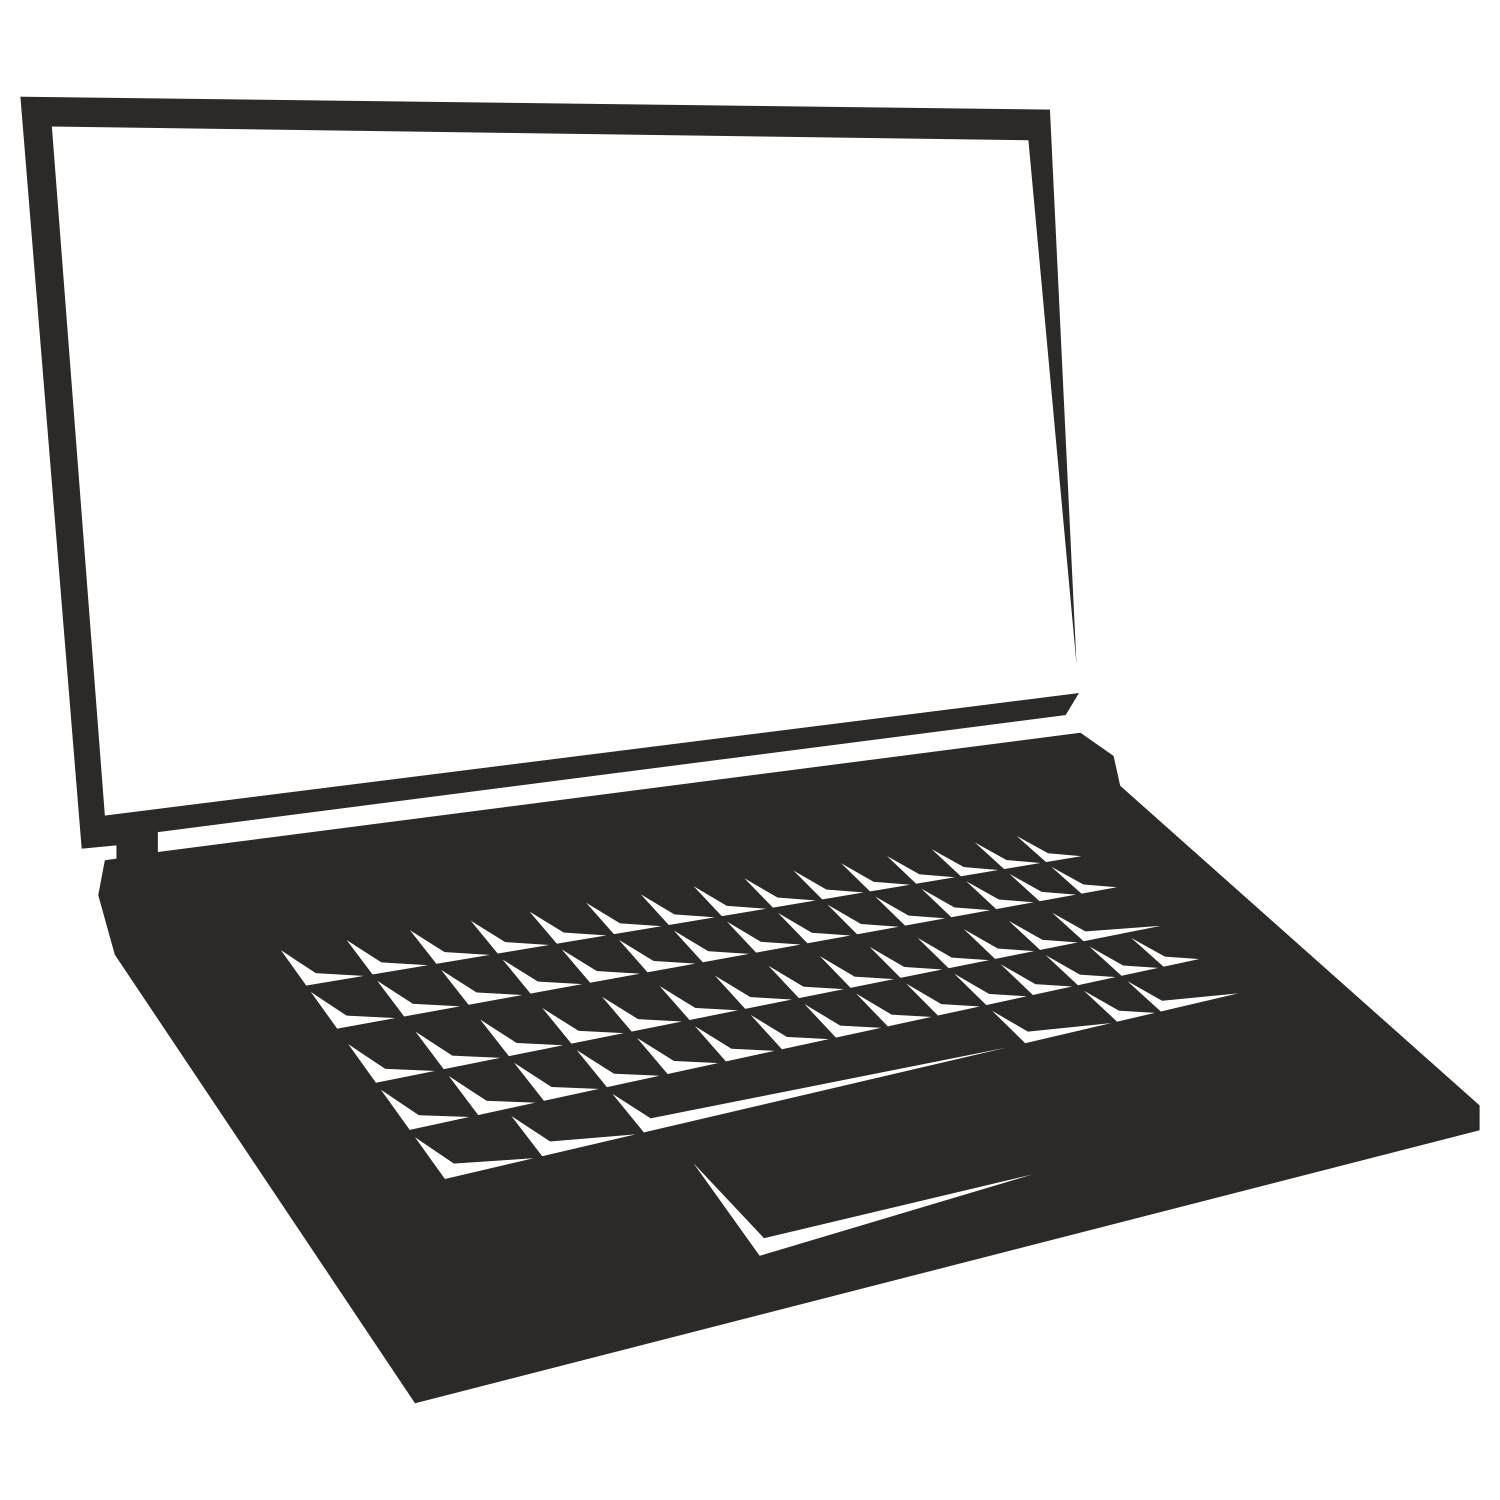 1500x1500 Vector For Free Use Notebook Laptop Vector